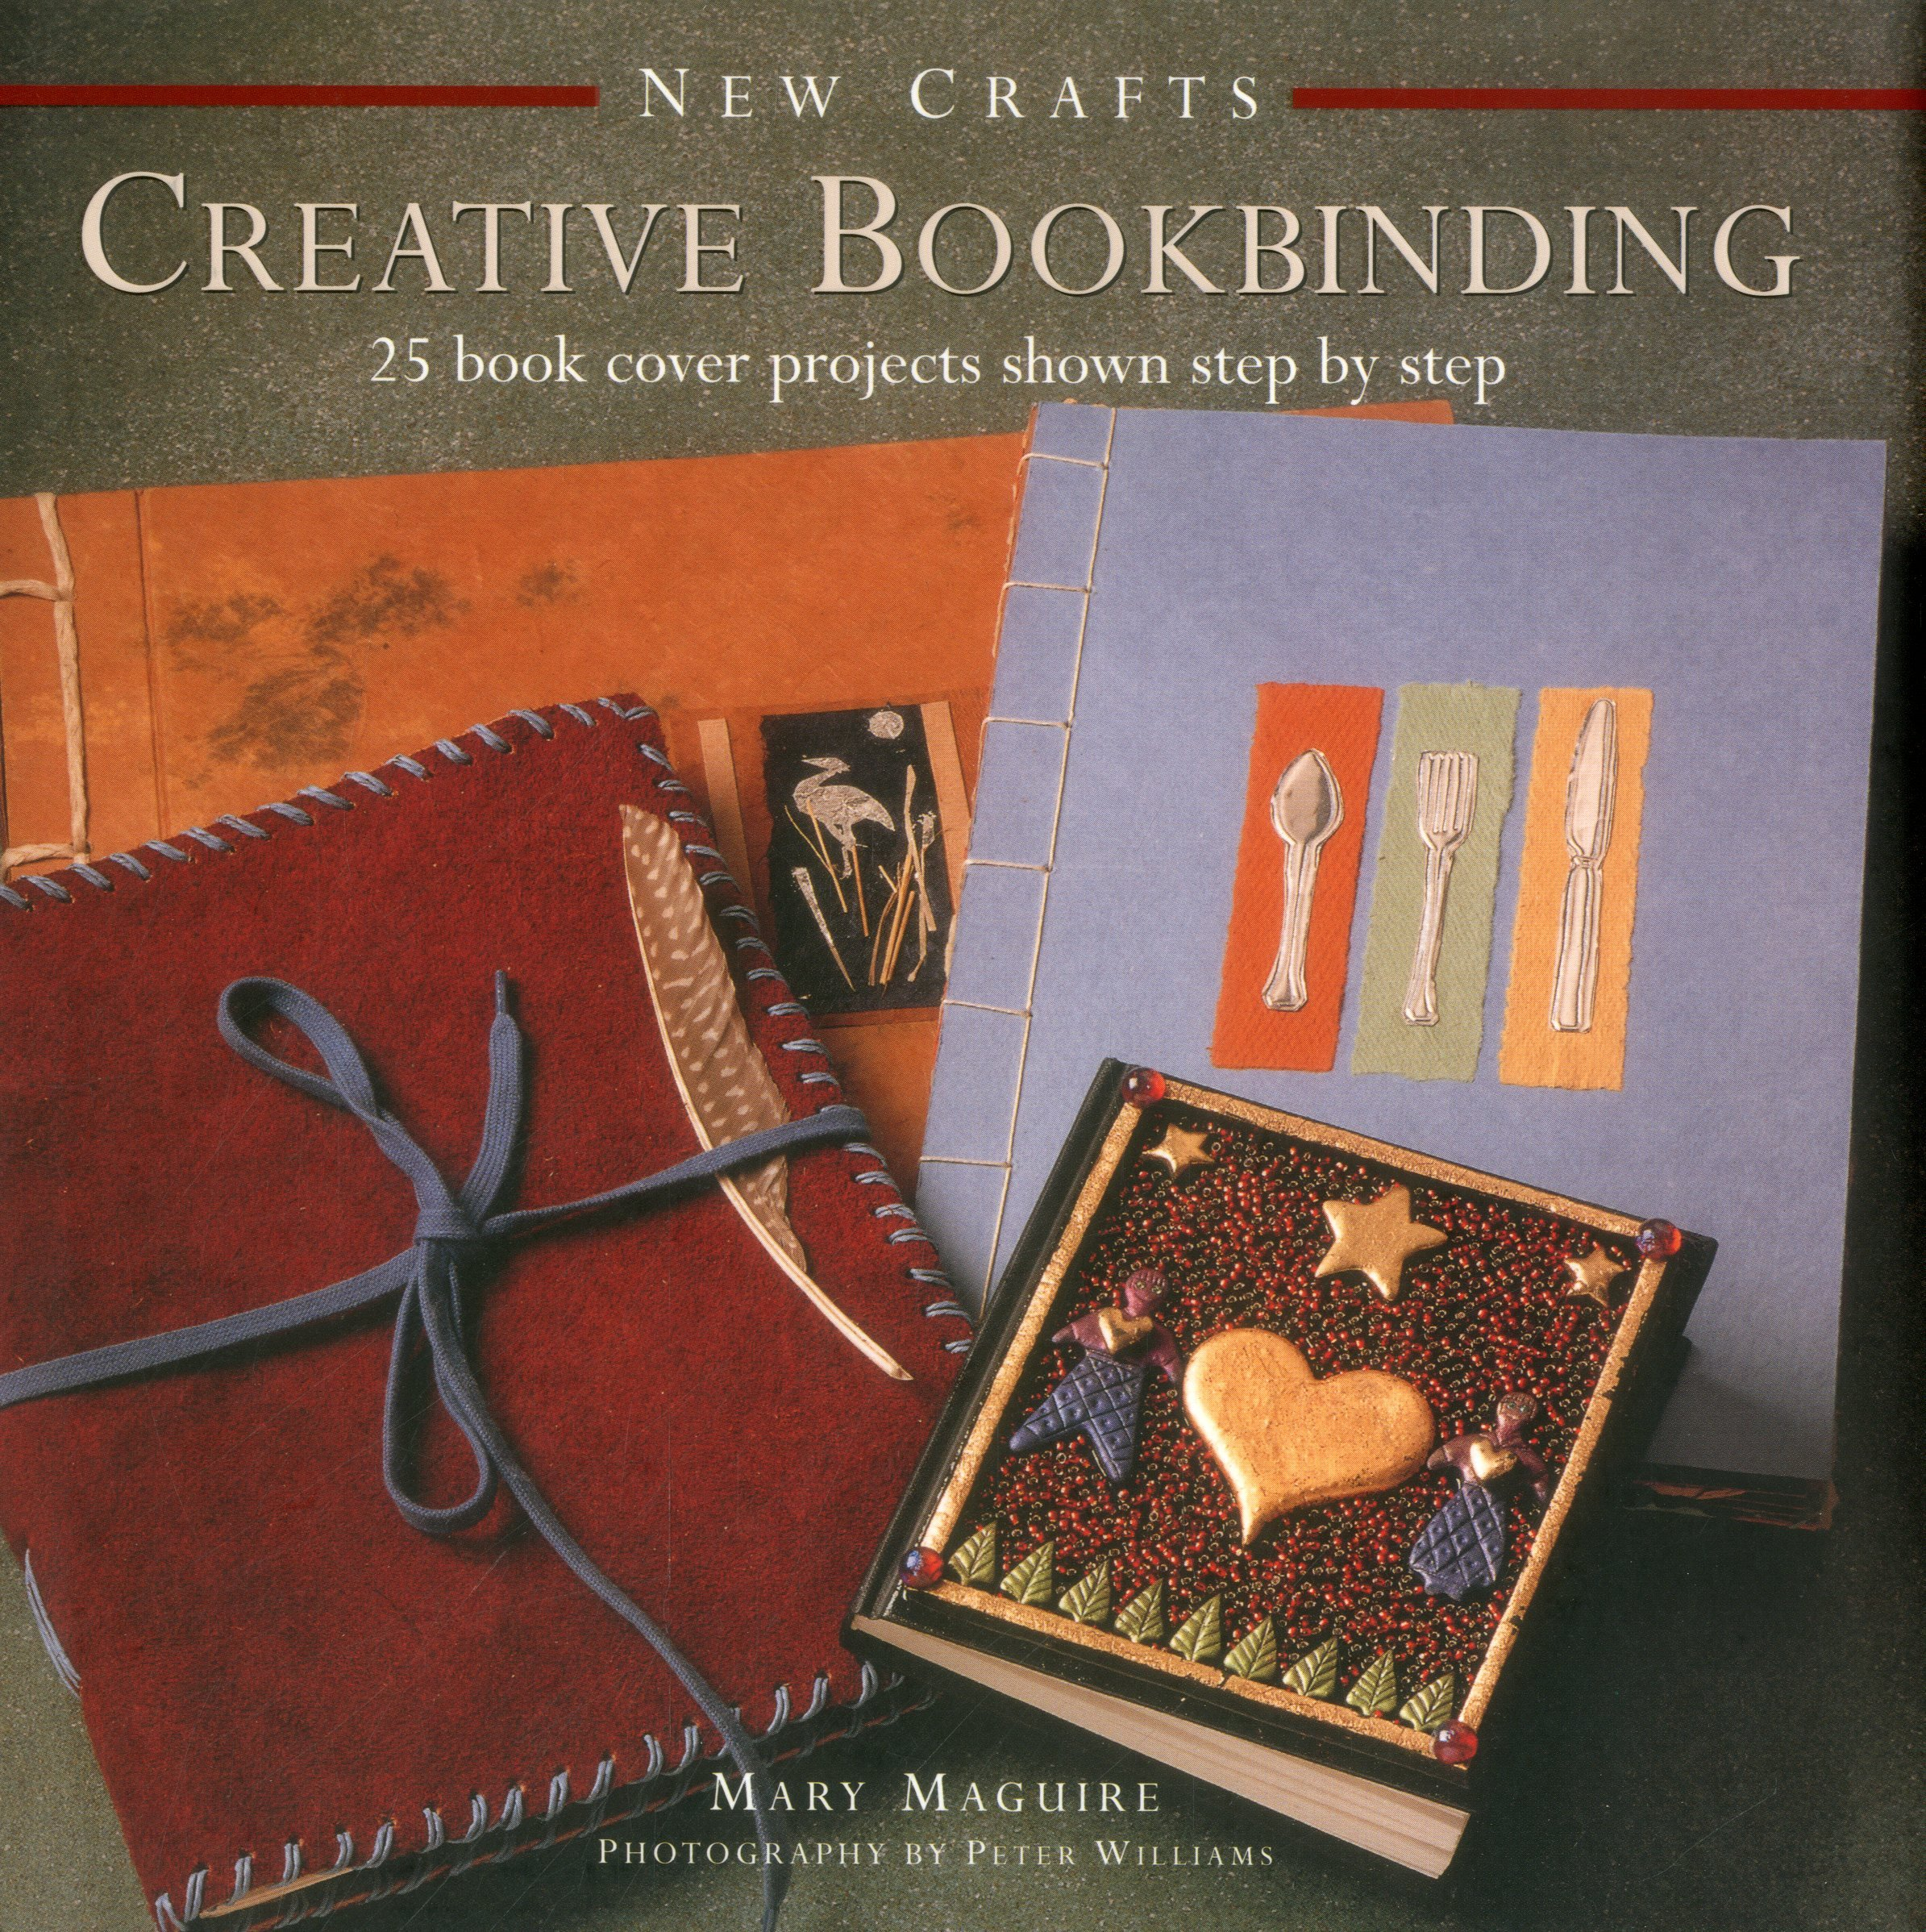 New Crafts Creative Bookbinding 25 Book Cover Projects Shown Step